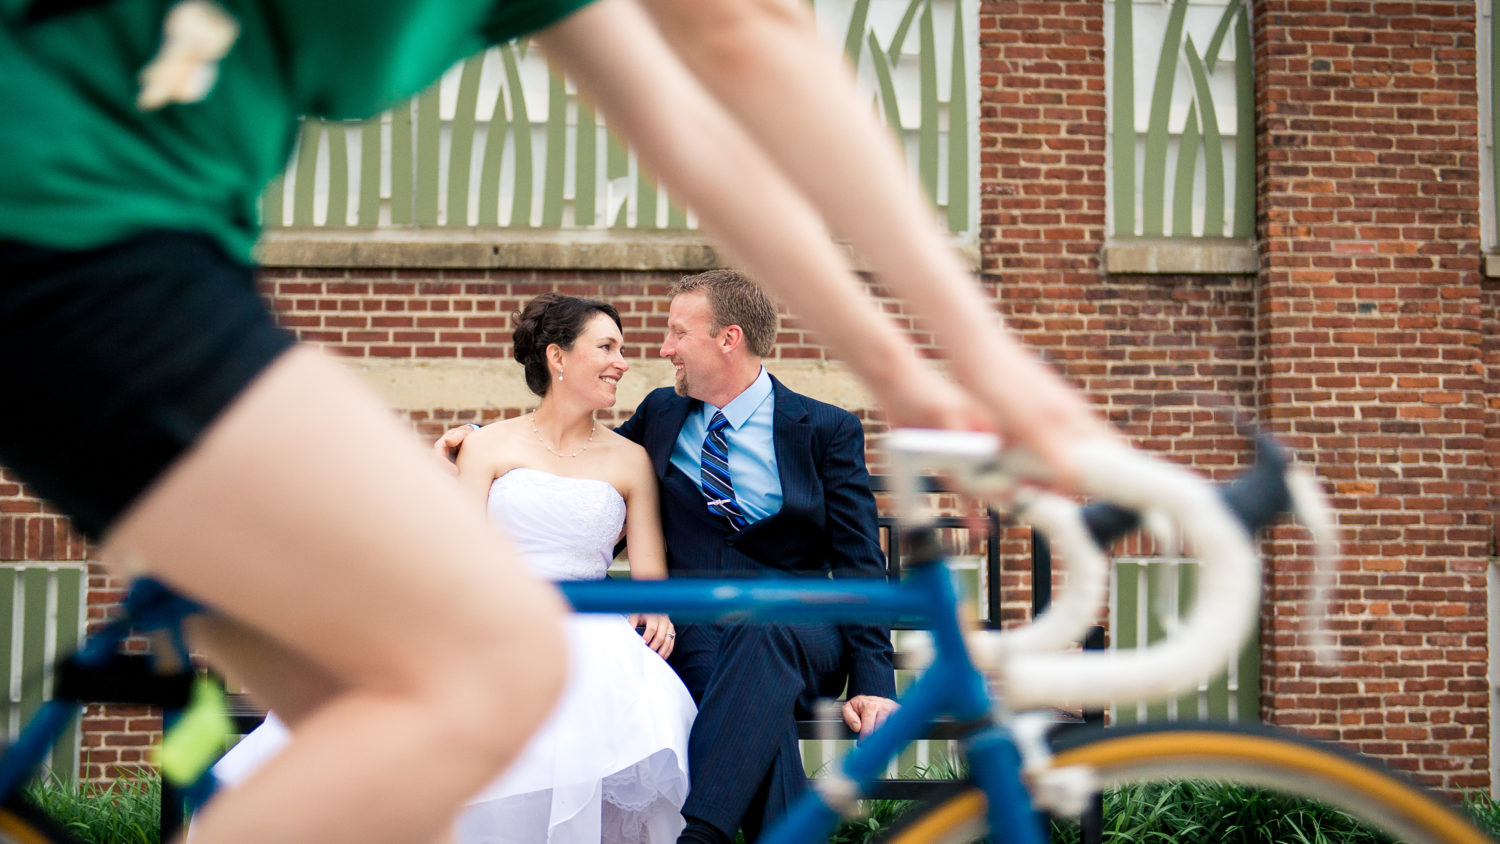 Fun biking wedding portrait